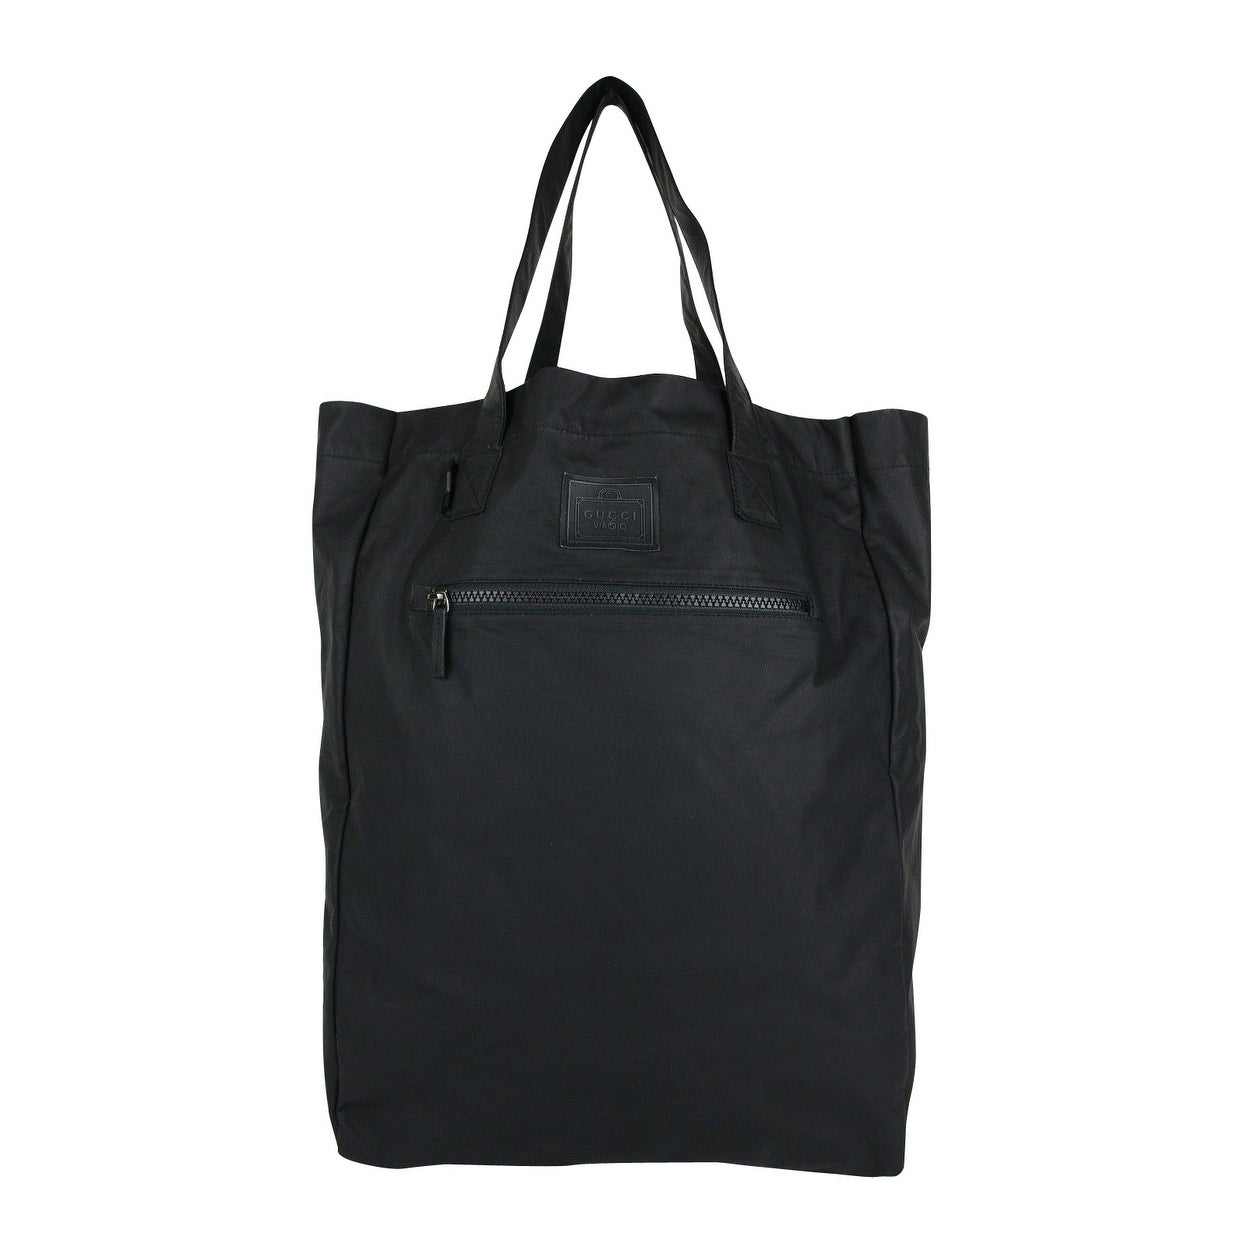 ba1c529bf Shop Gucci Men's Viaggio Collection Black Leather Small Foldable Tote Bag  308877 8615 - Free Shipping Today - Overstock - 27603098